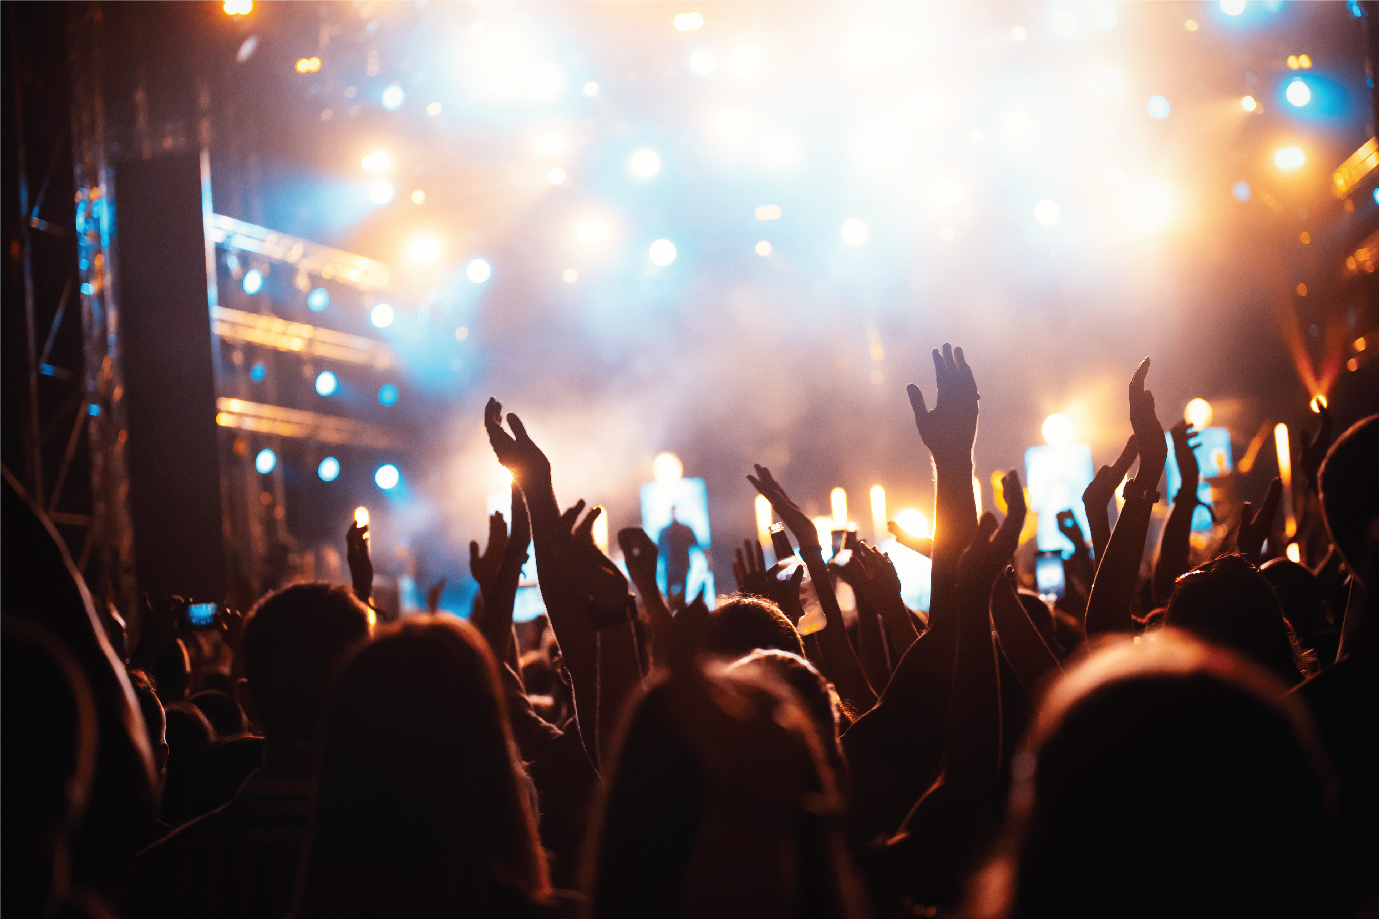 Attendees at a rock concert